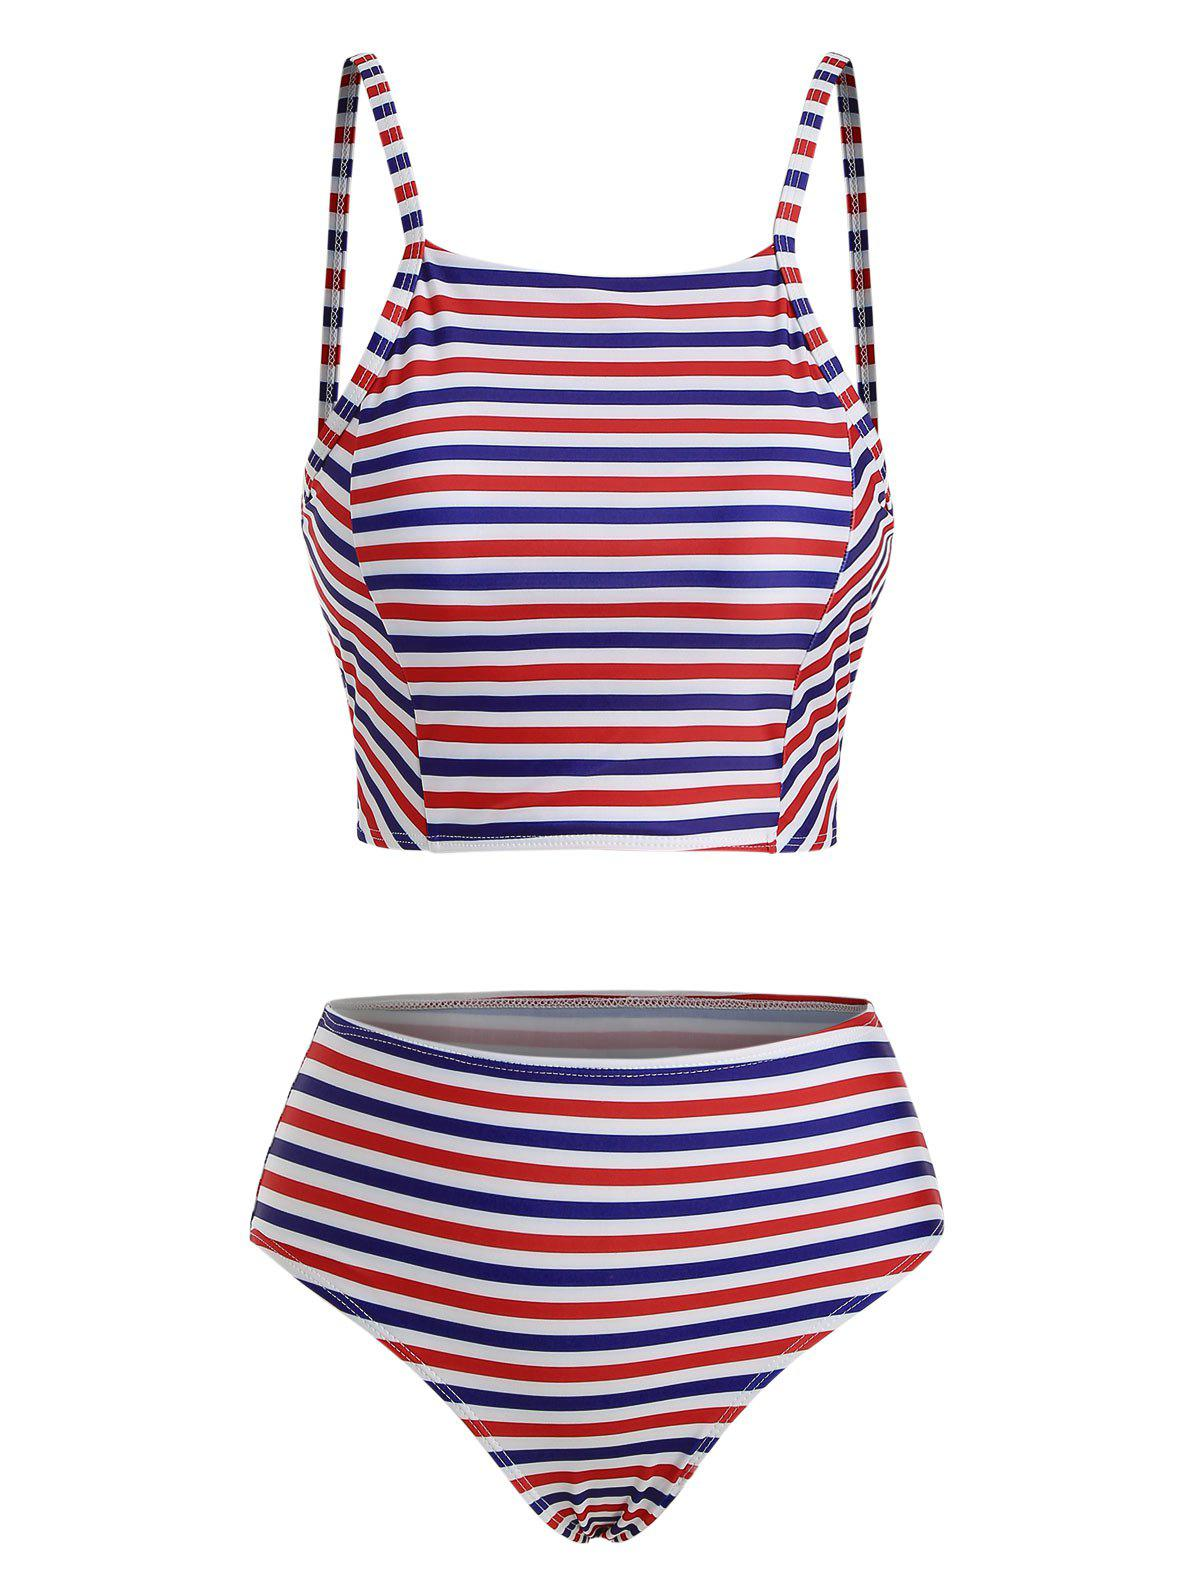 Fancy Multi Striped Lace-up High Neck Bikini Swimsuit